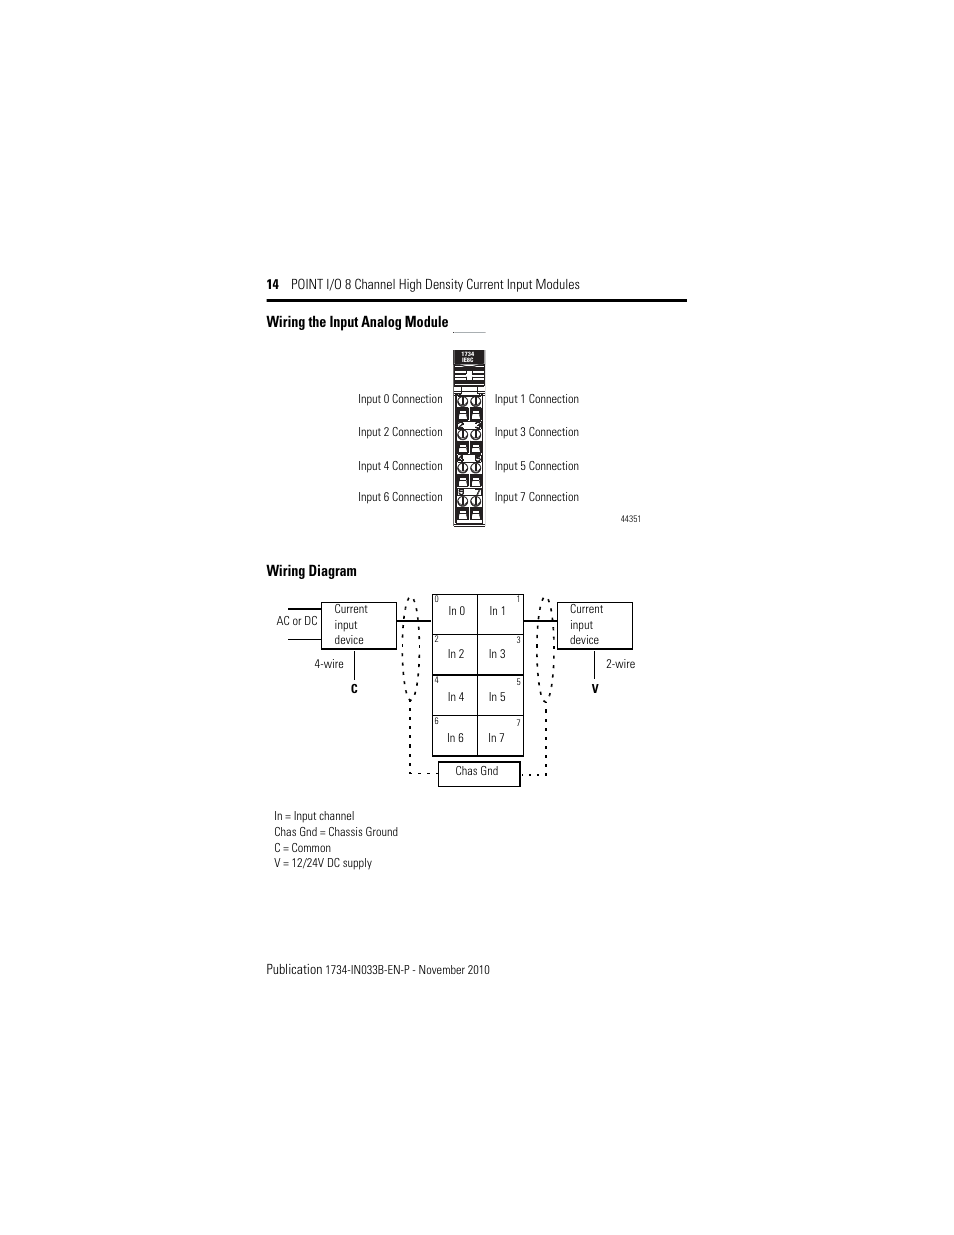 1734 Ie8c Wiring Diagram 24 Images Powerflex 40 Ethernet Rockwell Automation Installation Instructions Page14 The Input Analog Module